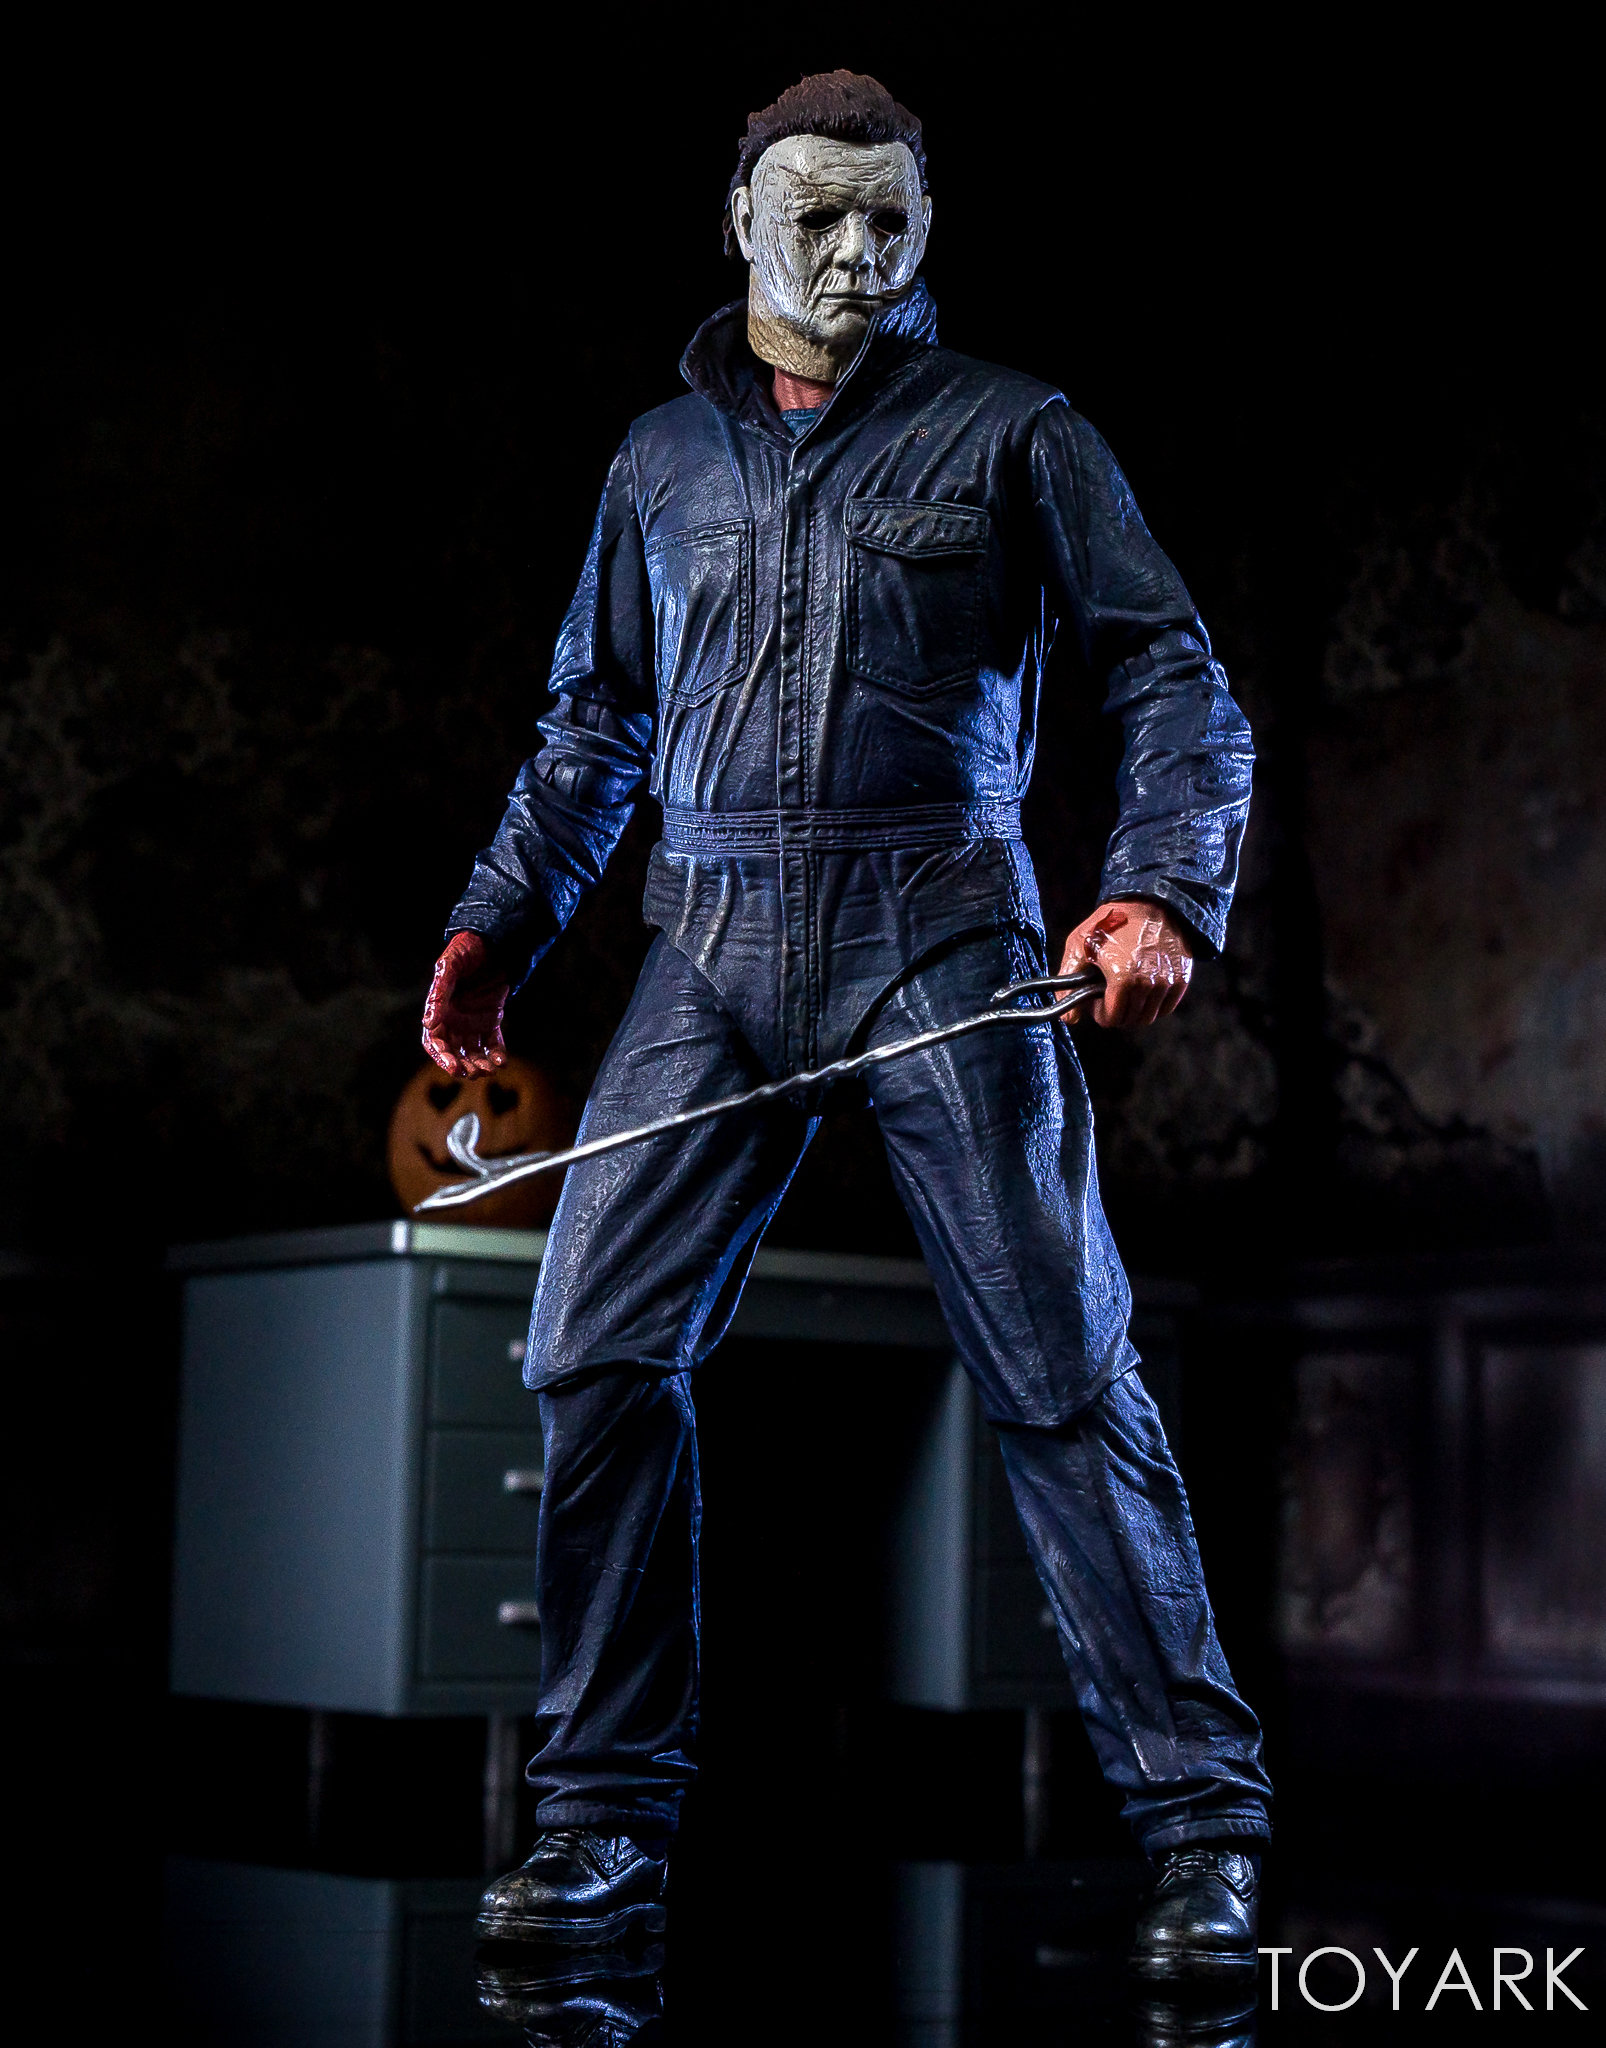 https://news.toyark.com/wp-content/uploads/sites/4/2018/11/Halloween-2018-Michael-Myers-Figure-051.jpg